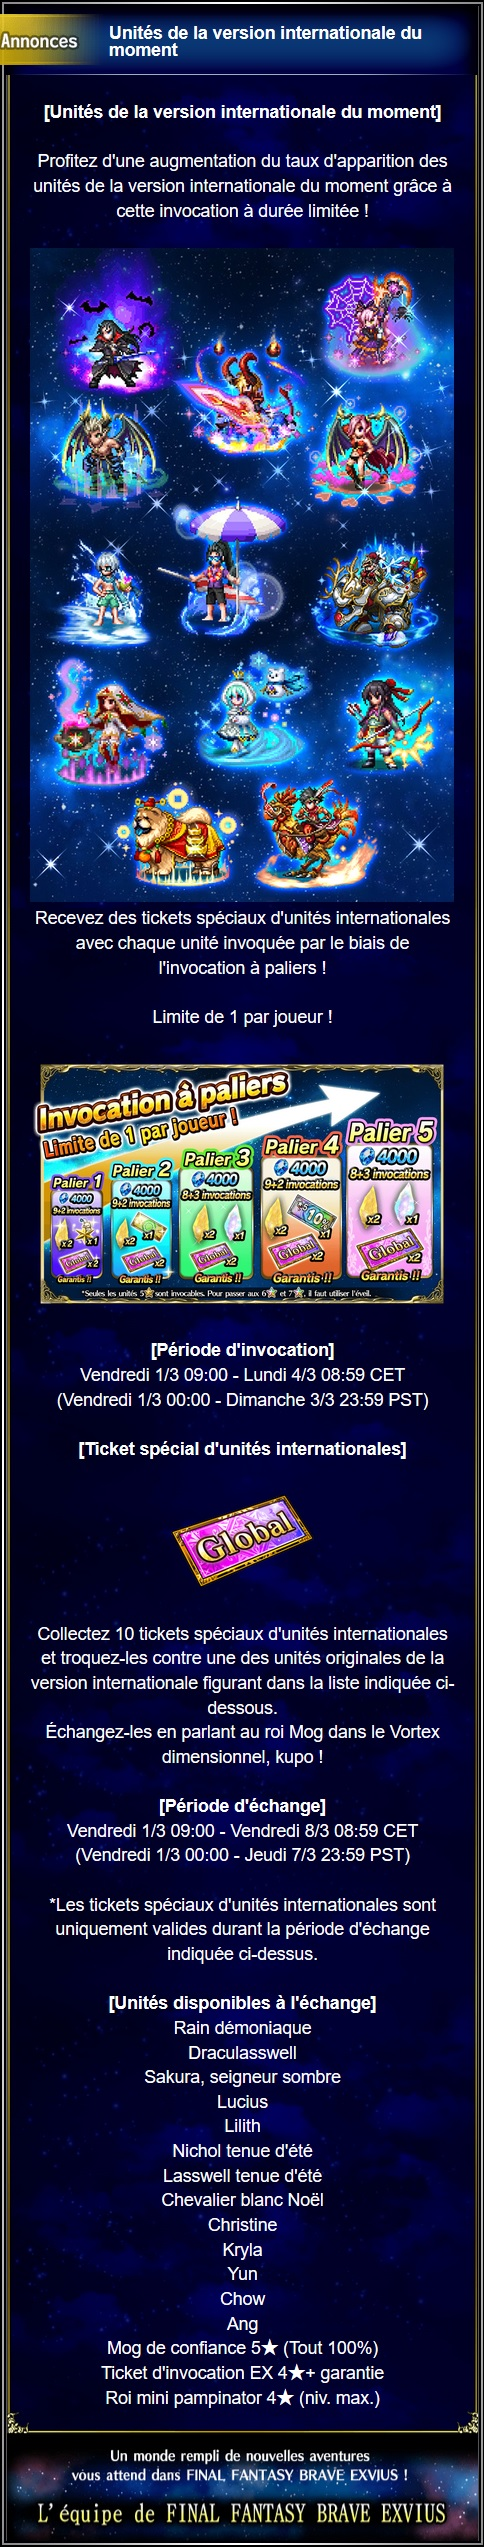 Invocations moment - FFBE GLEX - du 01/03 au 04/03/19 Captu113